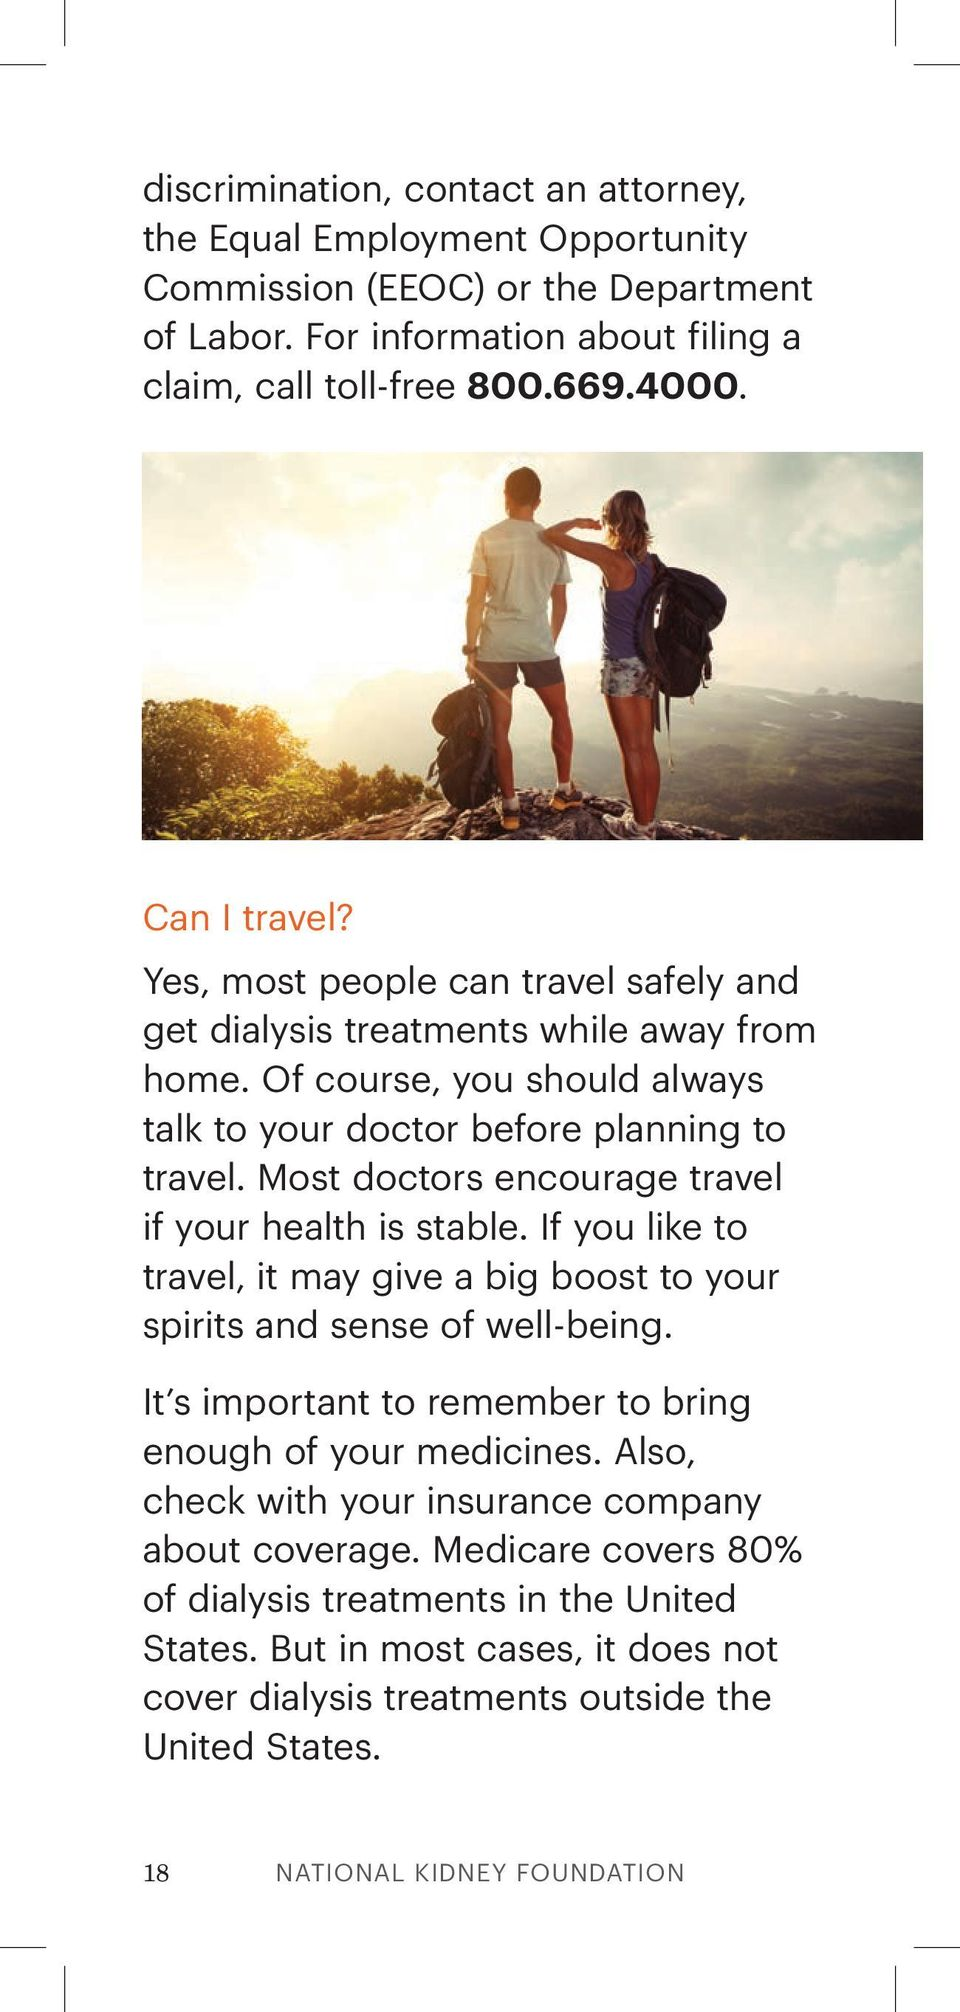 Most doctors encourage travel if your health is stable. If you like to travel, it may give a big boost to your spirits and sense of well-being.